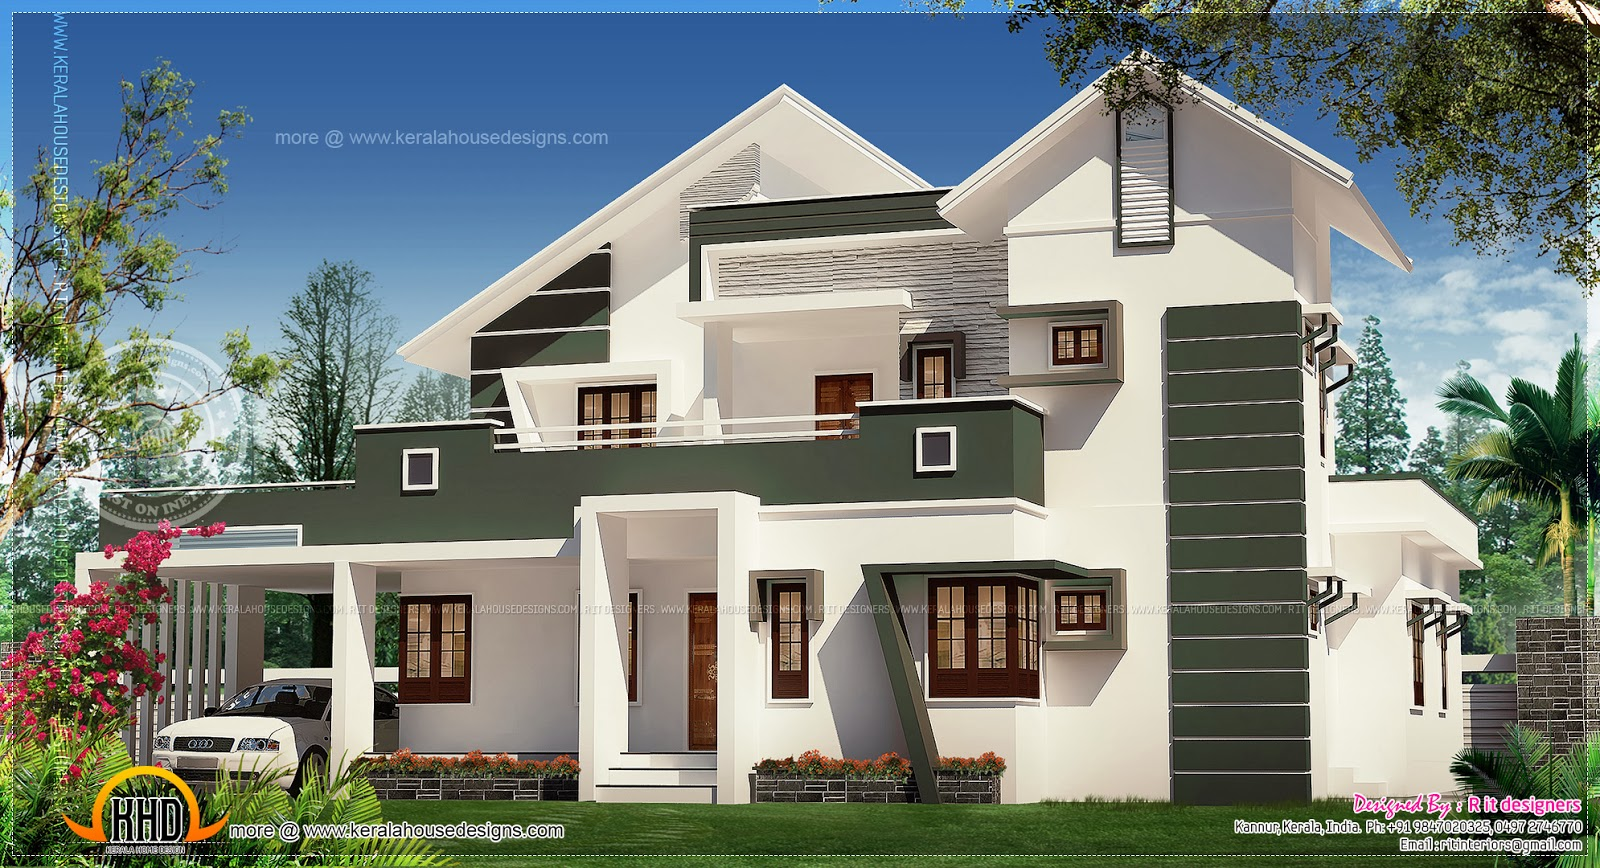 Luxury modern villa elevation kerala home design and for Kerala style villa plans